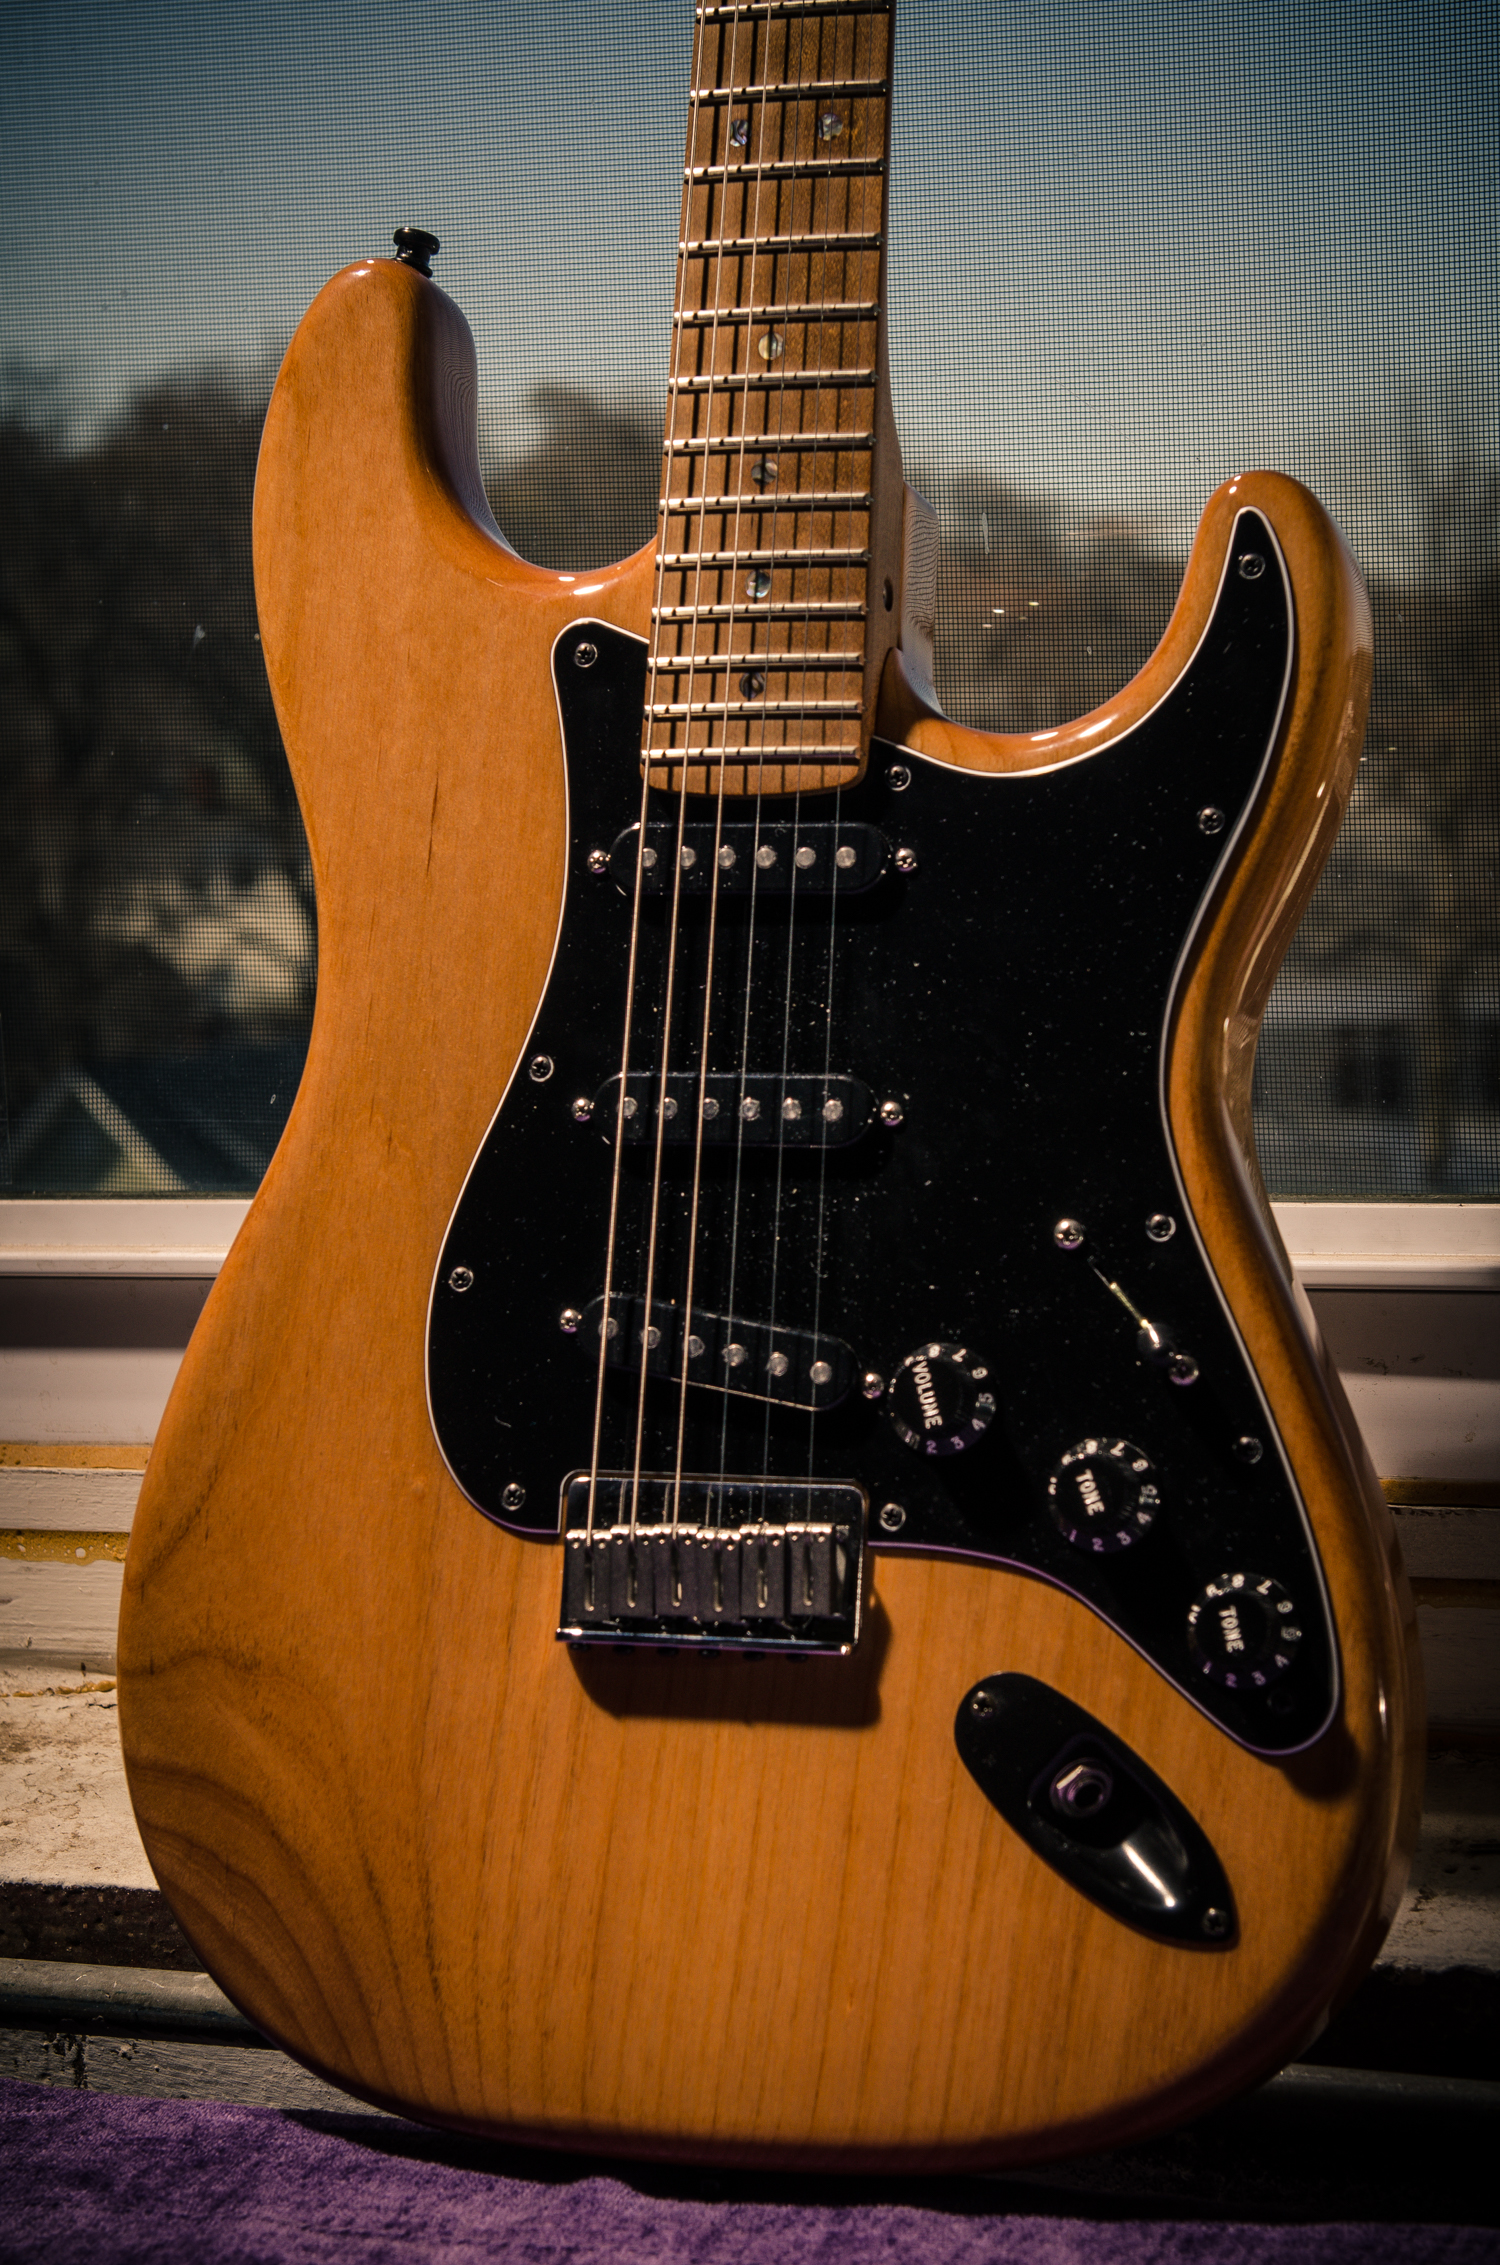 20160415_Brown_Warmoth_Strat_SSS_body.jpg